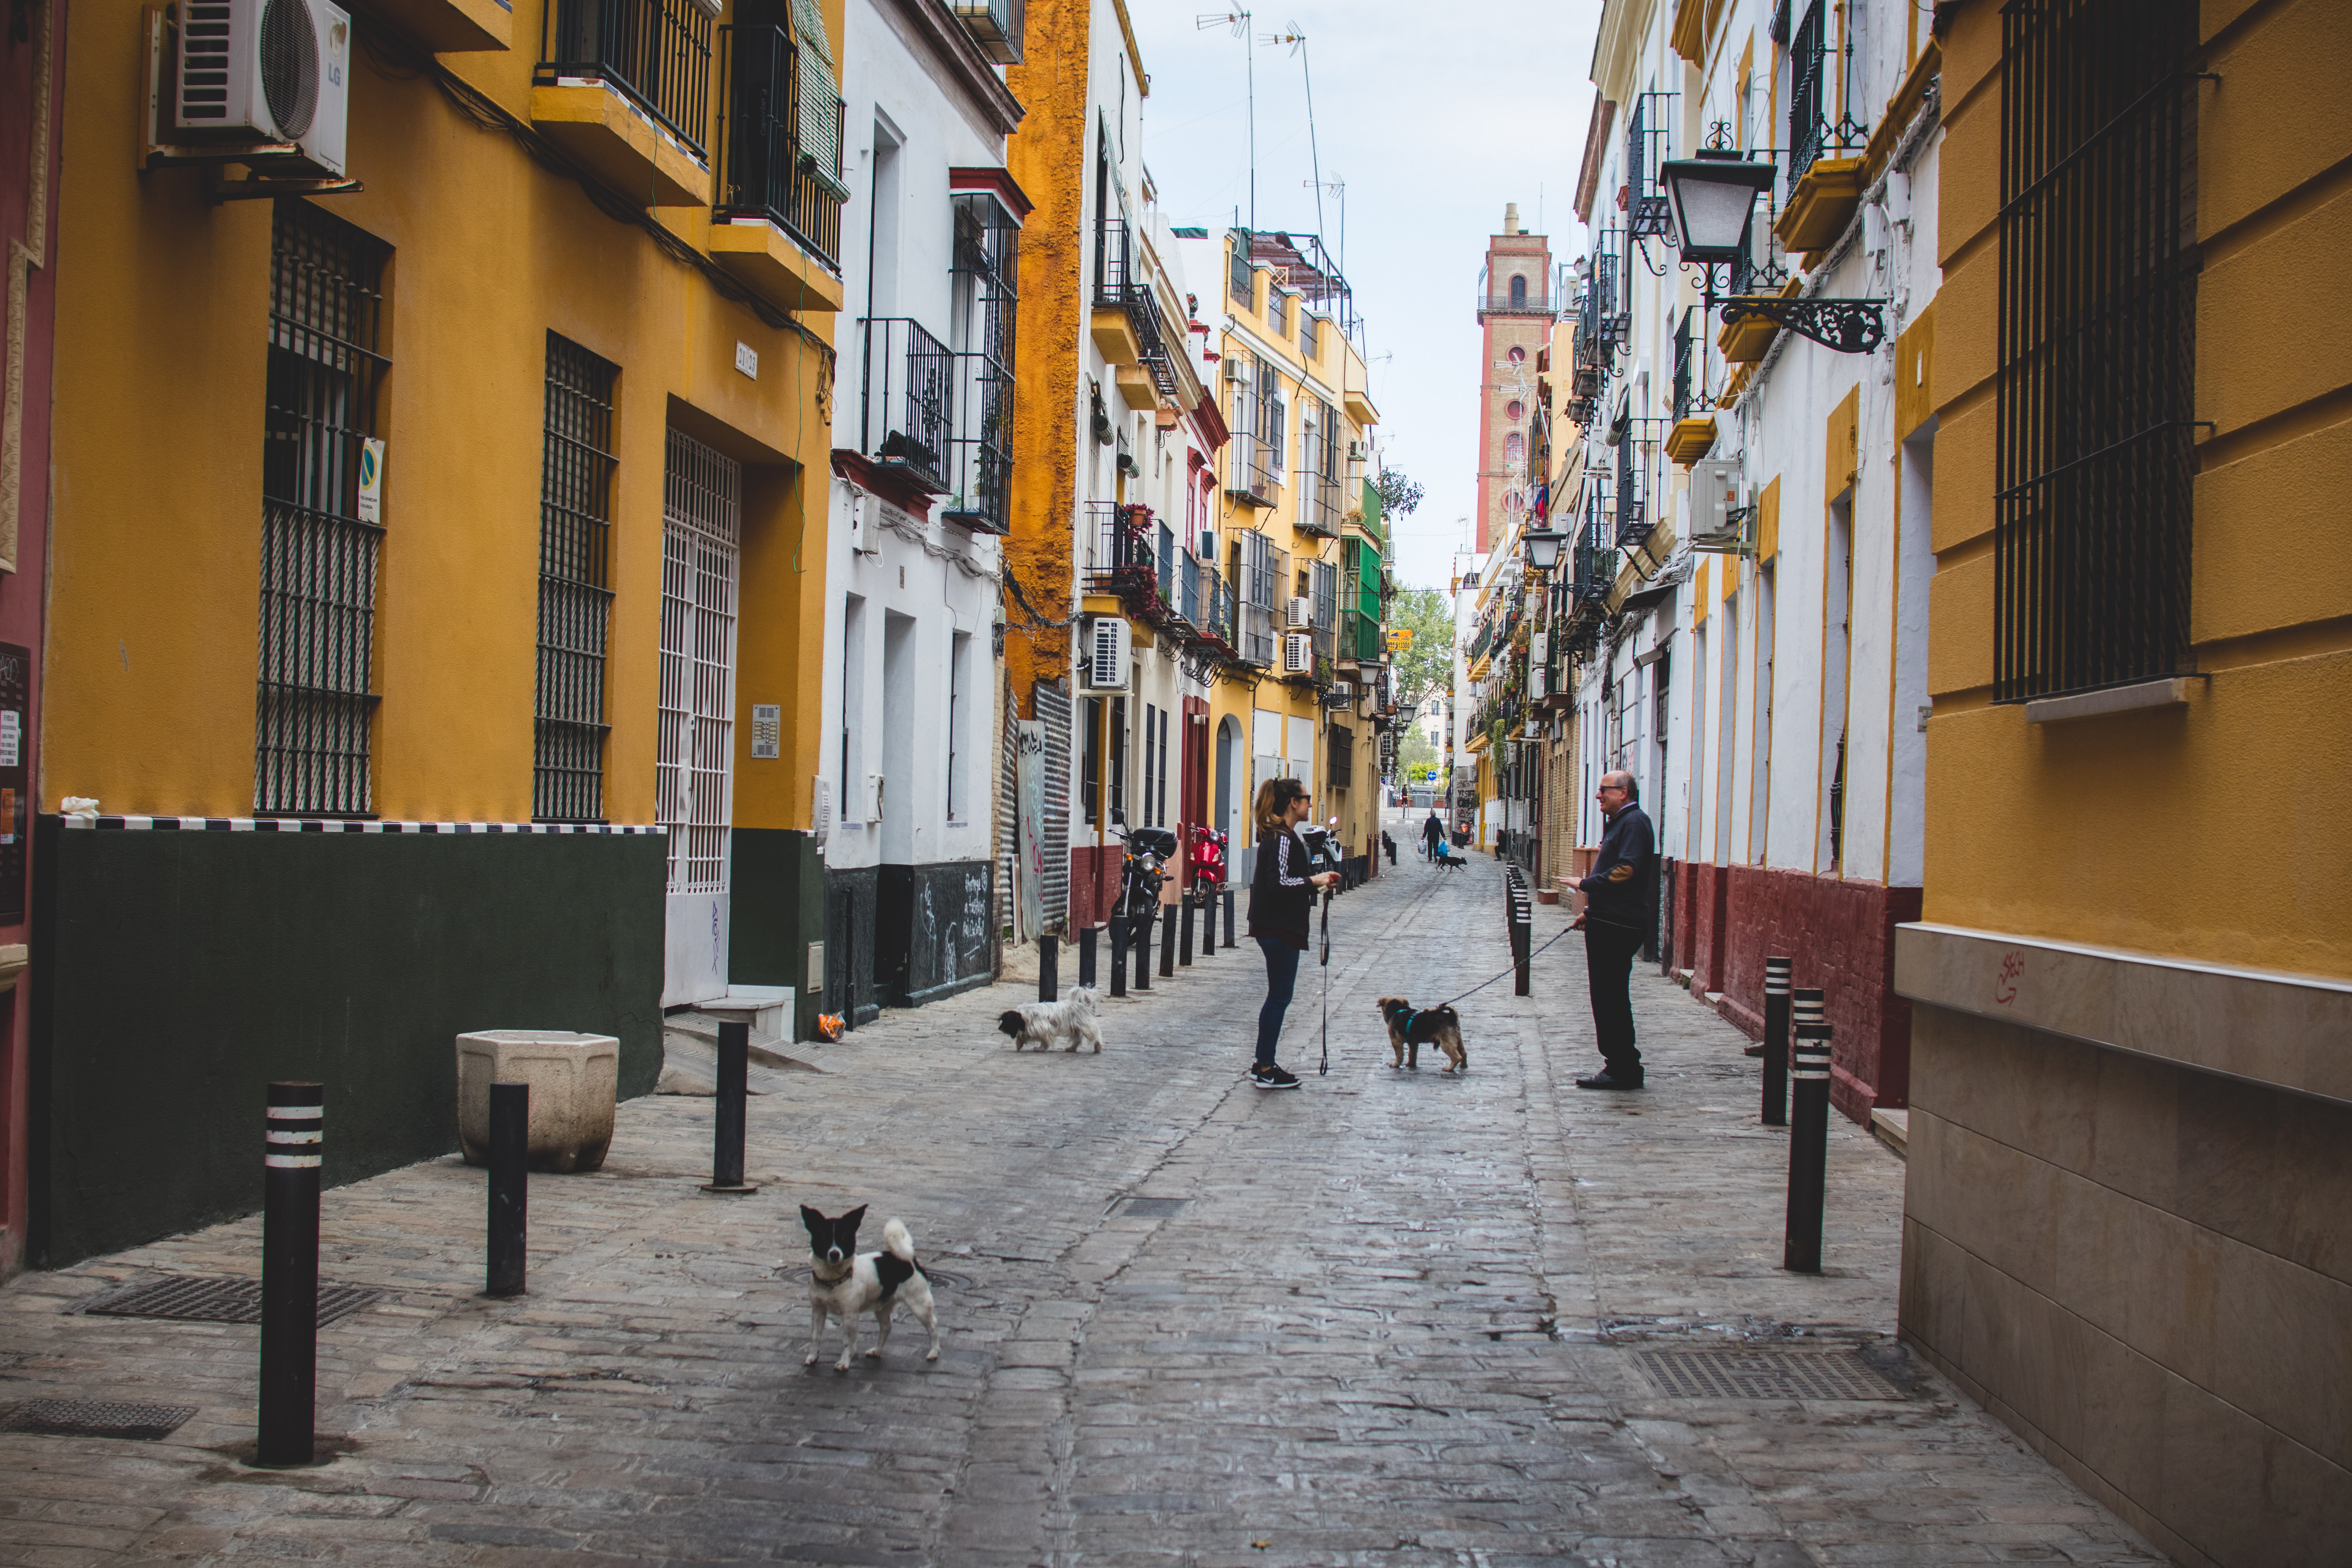 Streets of Seville 2019